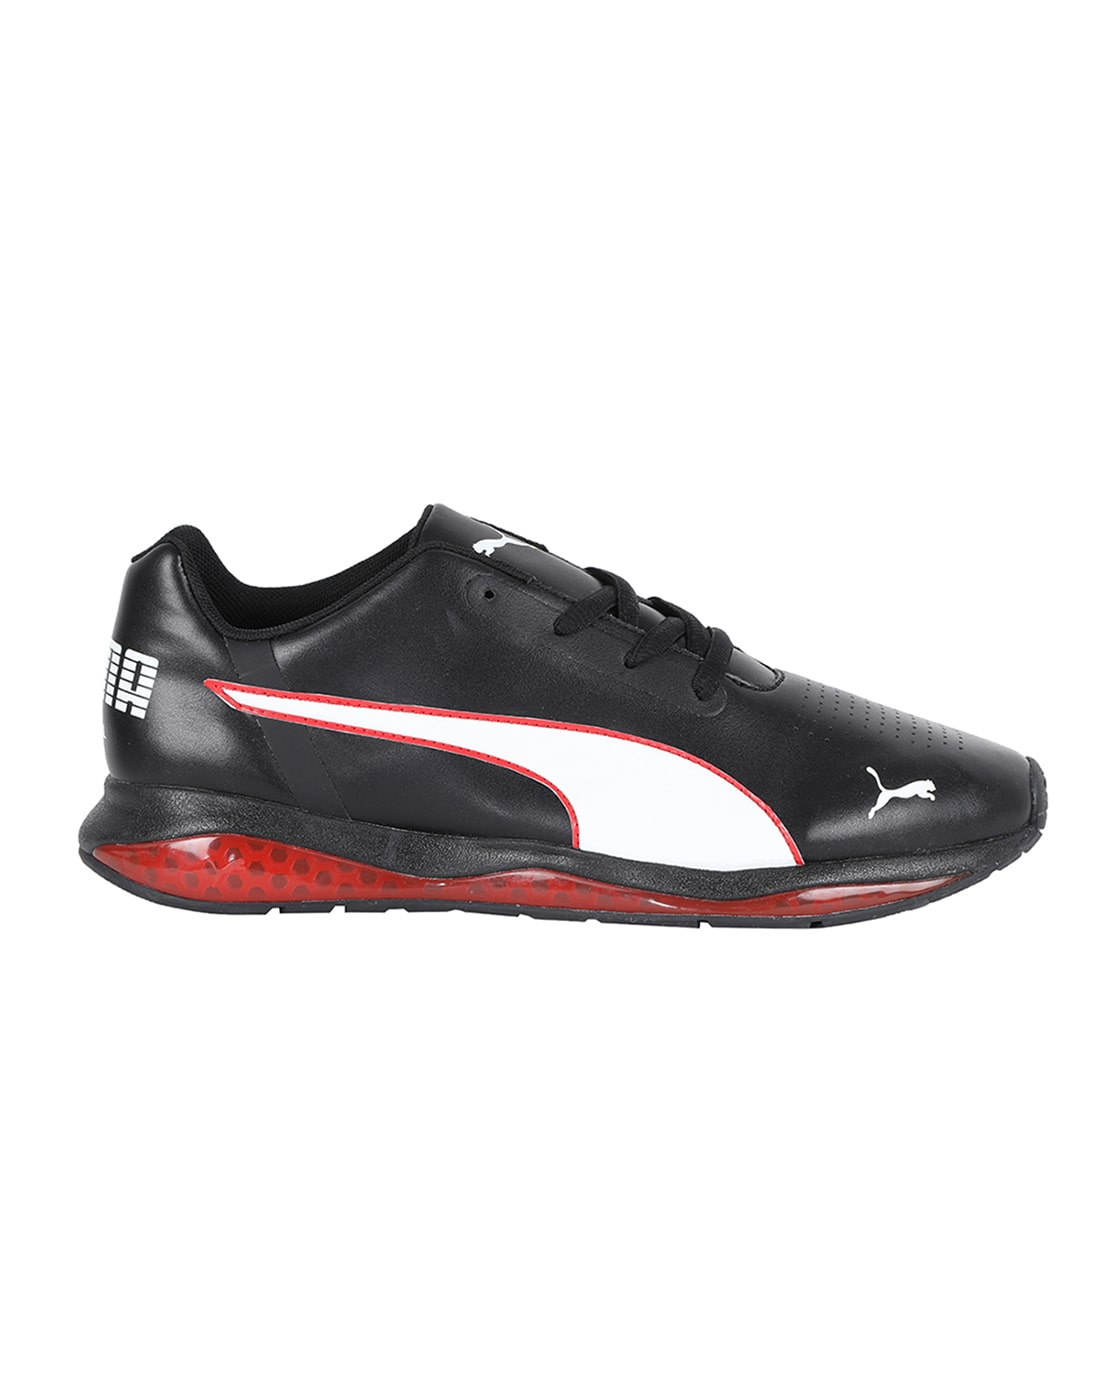 Puma Men s Cell Ultimate SL Black Walking Shoes for Men - Buy Puma Men s  Sport Shoes at 50% off.  4e9ae0622